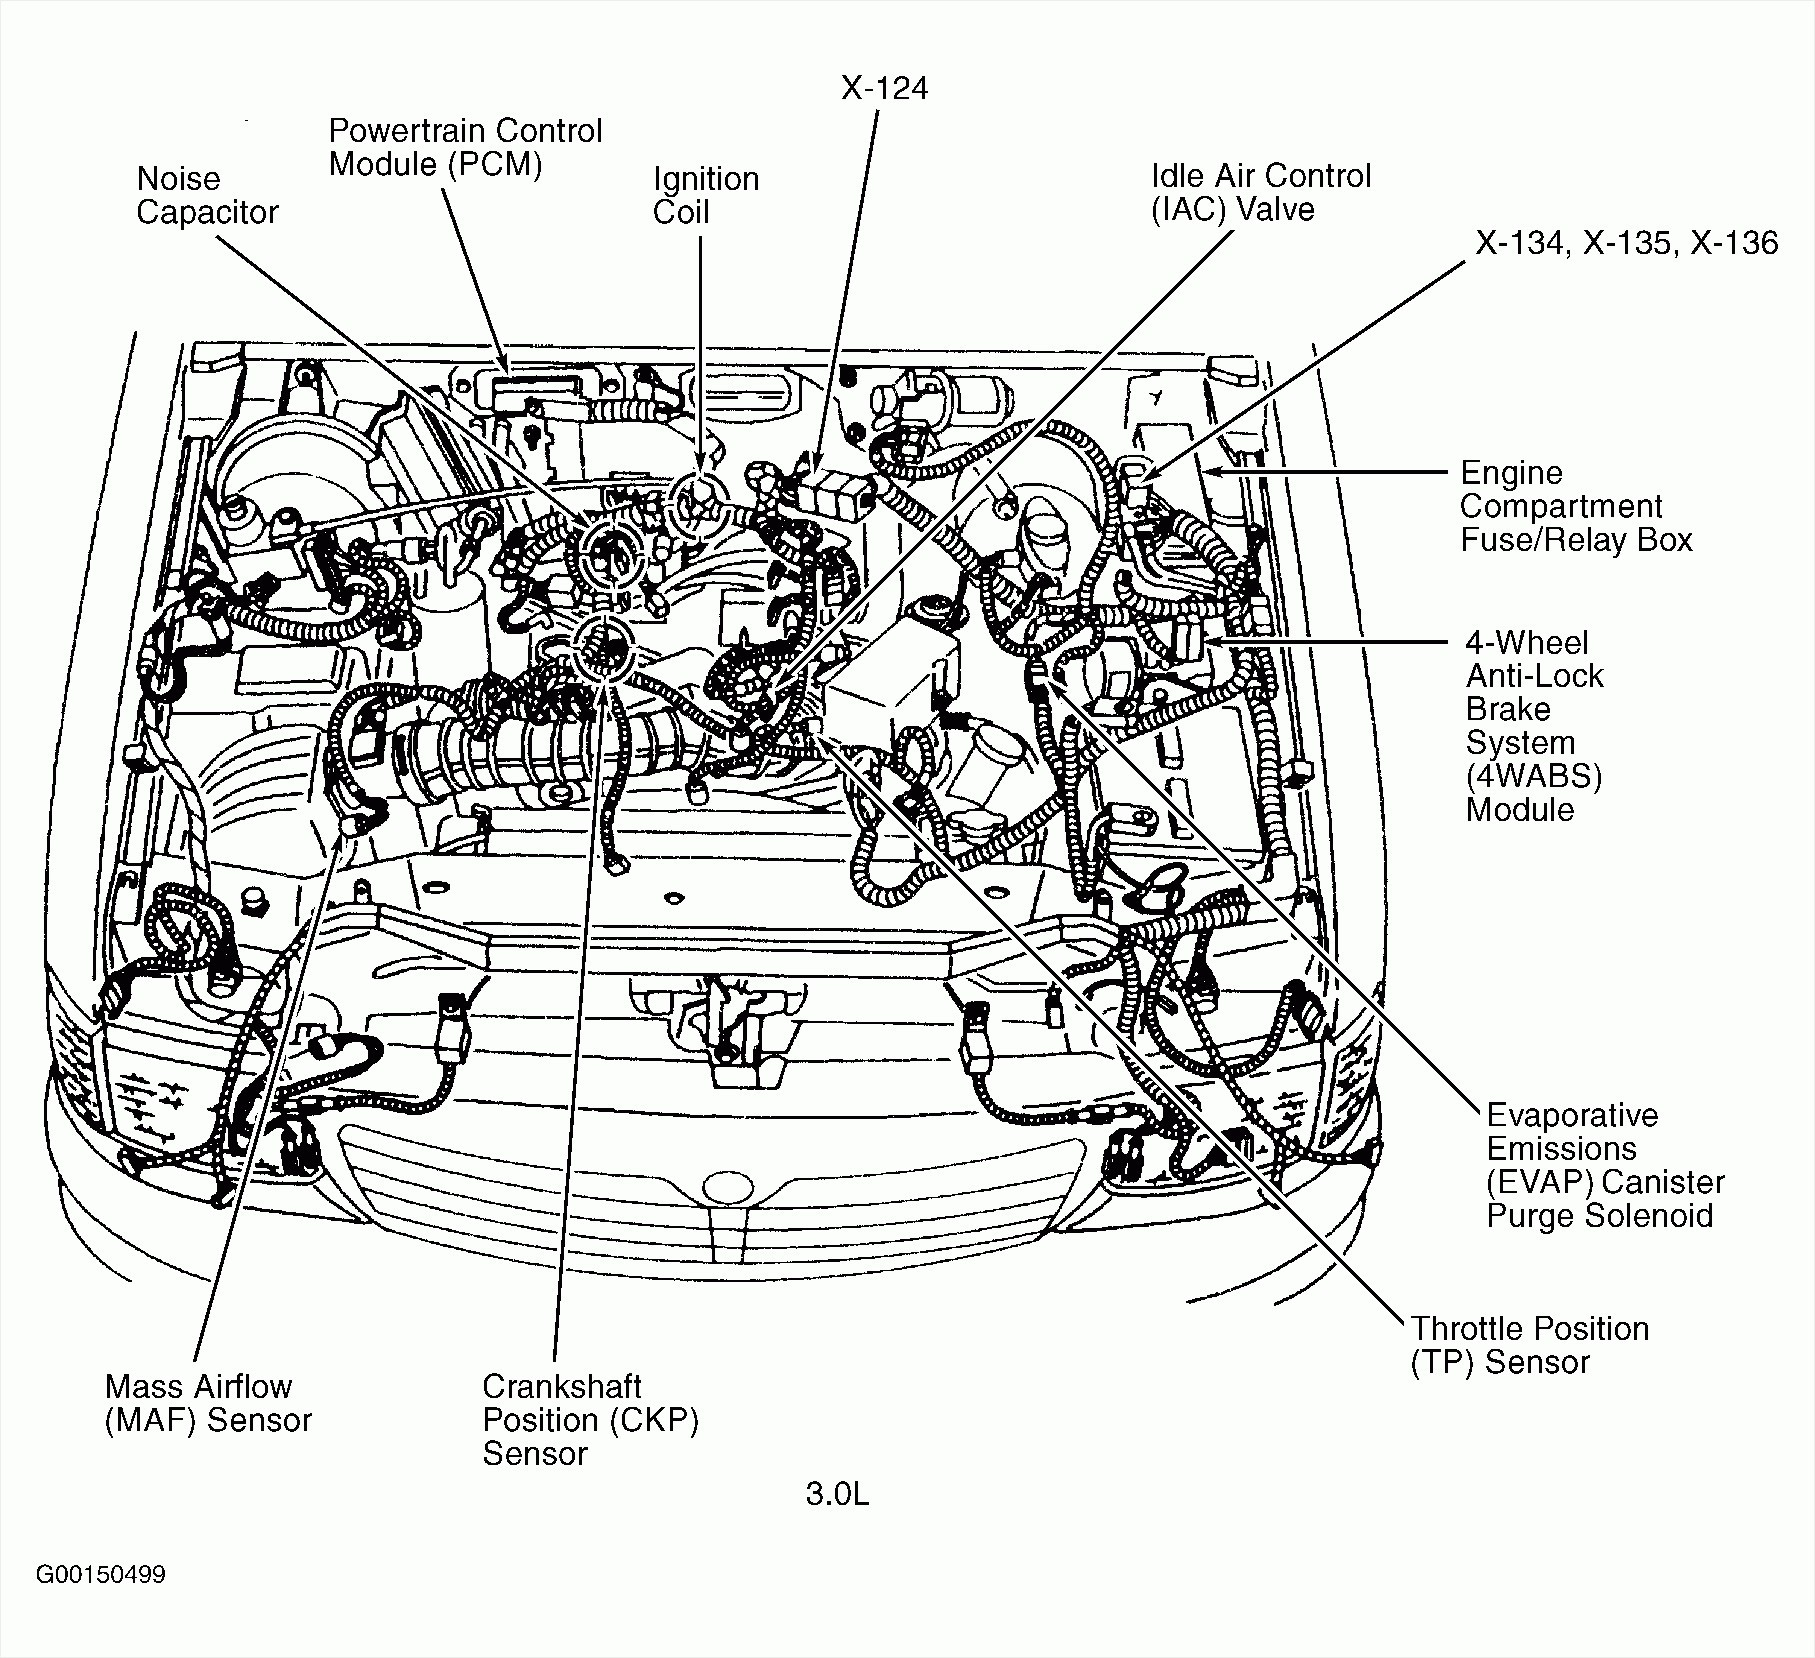 Vw Jetta Engine Diagram - Wiring Diagrams Description